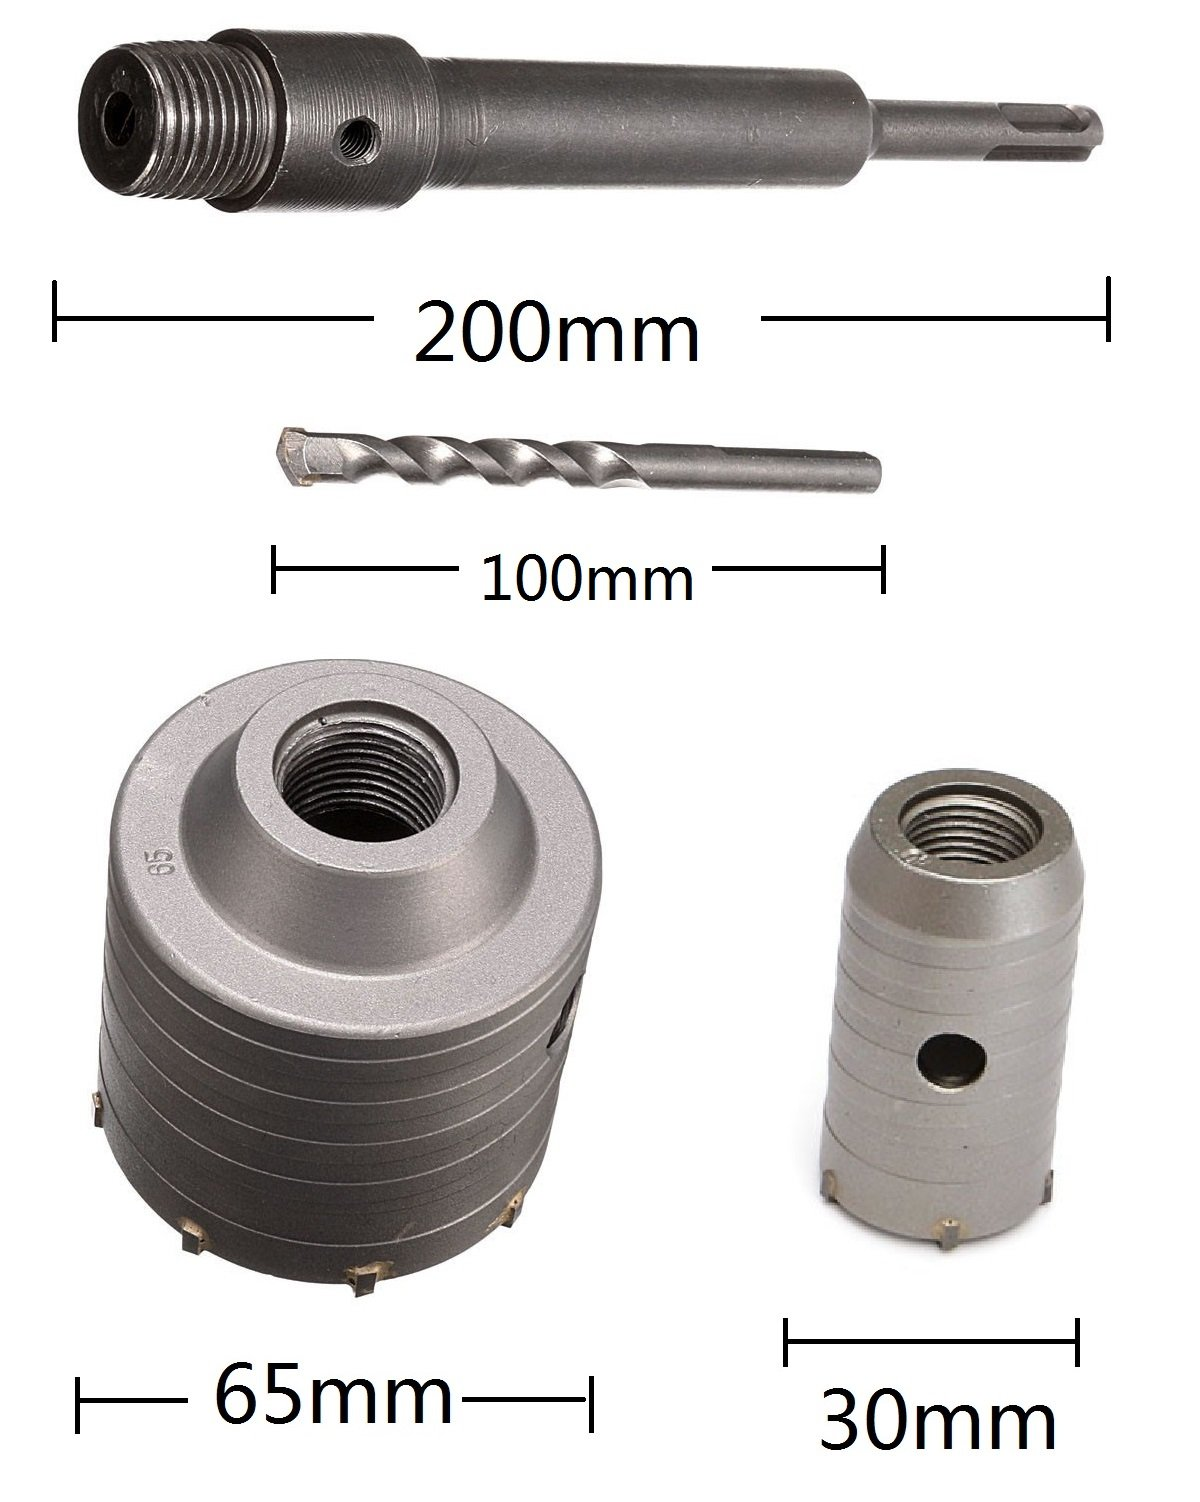 Alwaysuc 65mm + 30mm SDS Plus Shank Hole Saw Cutter Concrete Cement Stone Wall Drill Bit by Alwaysuc (Image #2)